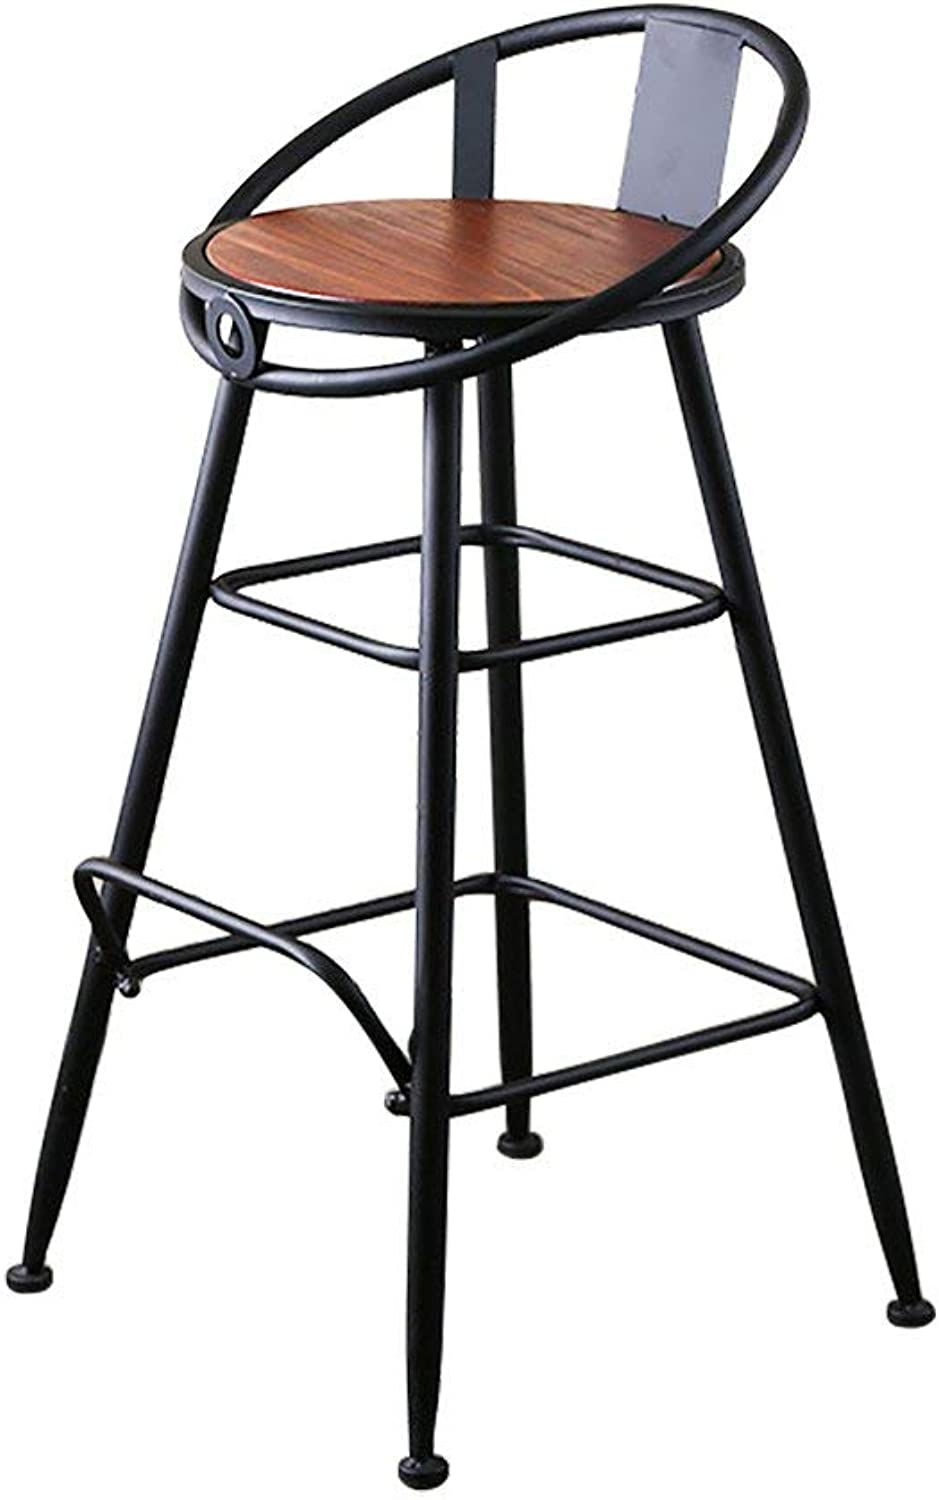 Retro Bar Chair, Creative Solid Wood Back Bar Stool, Casual Cafe Dining Chair High Chair Counter Chair (Size   65CM)